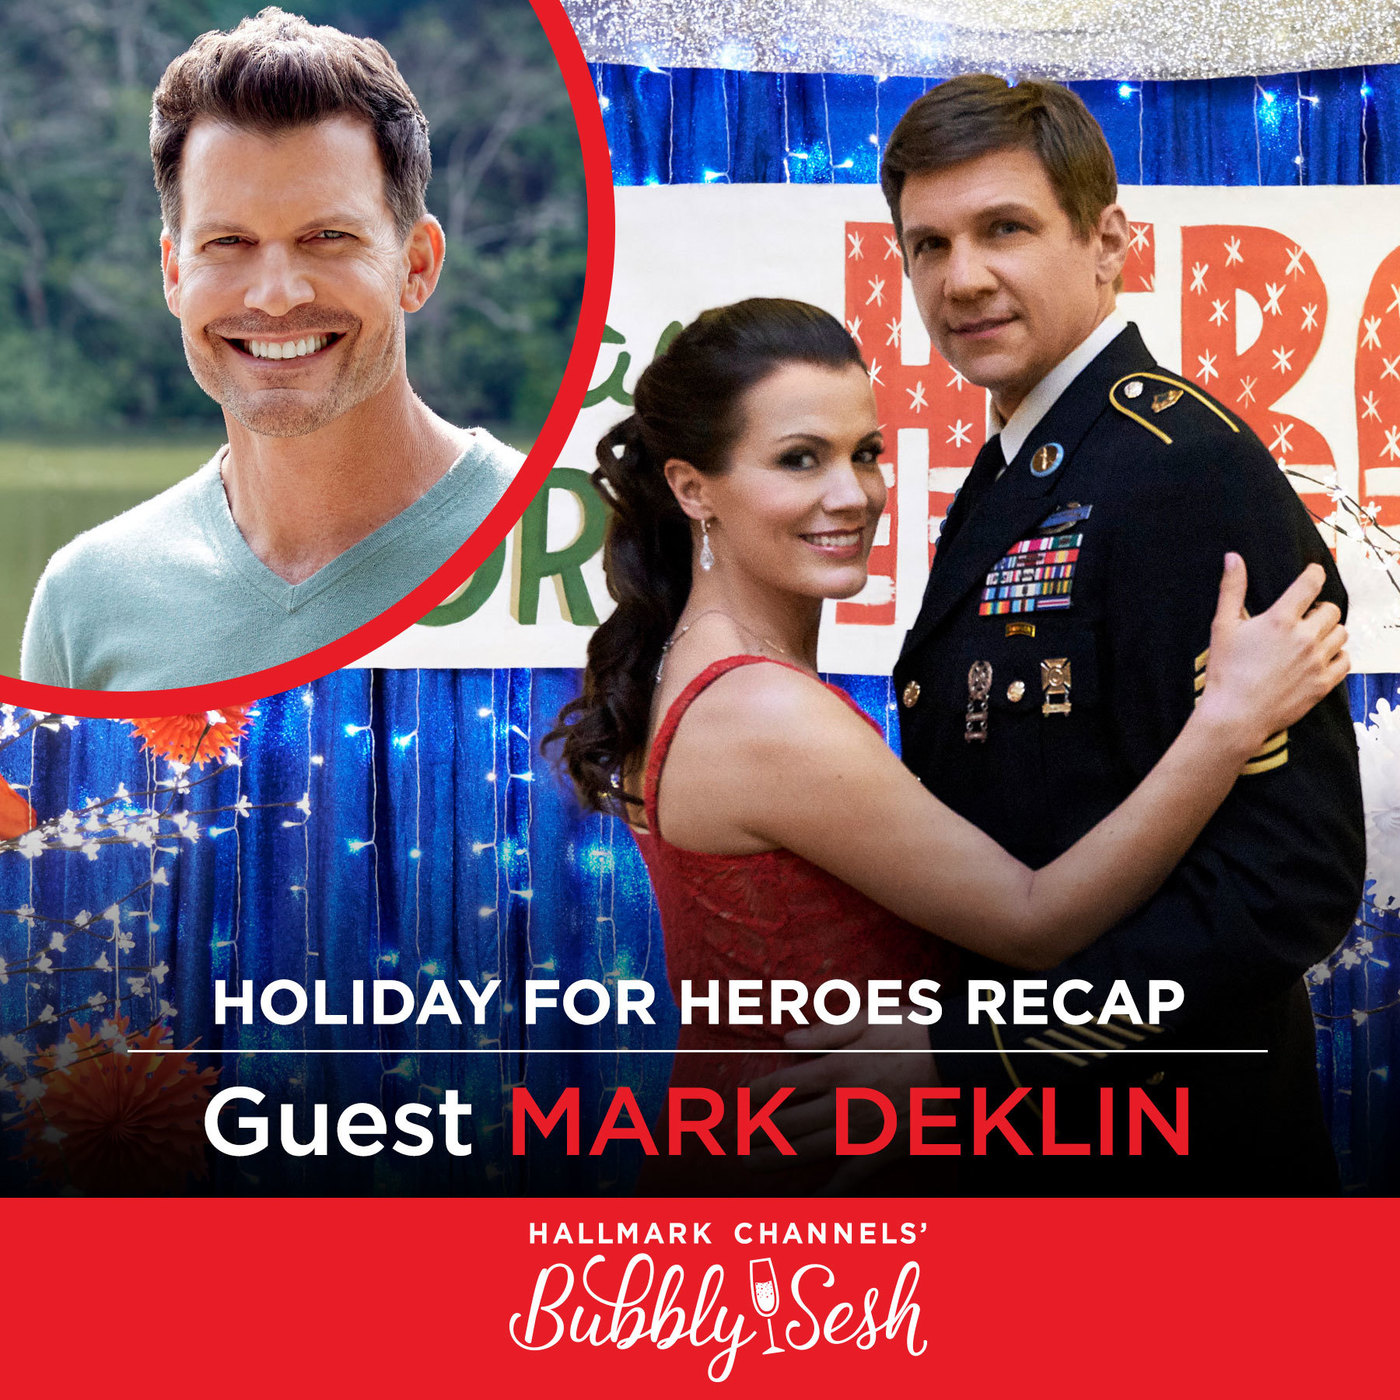 Holiday for Heroes Recap with Guest: Mark Deklin